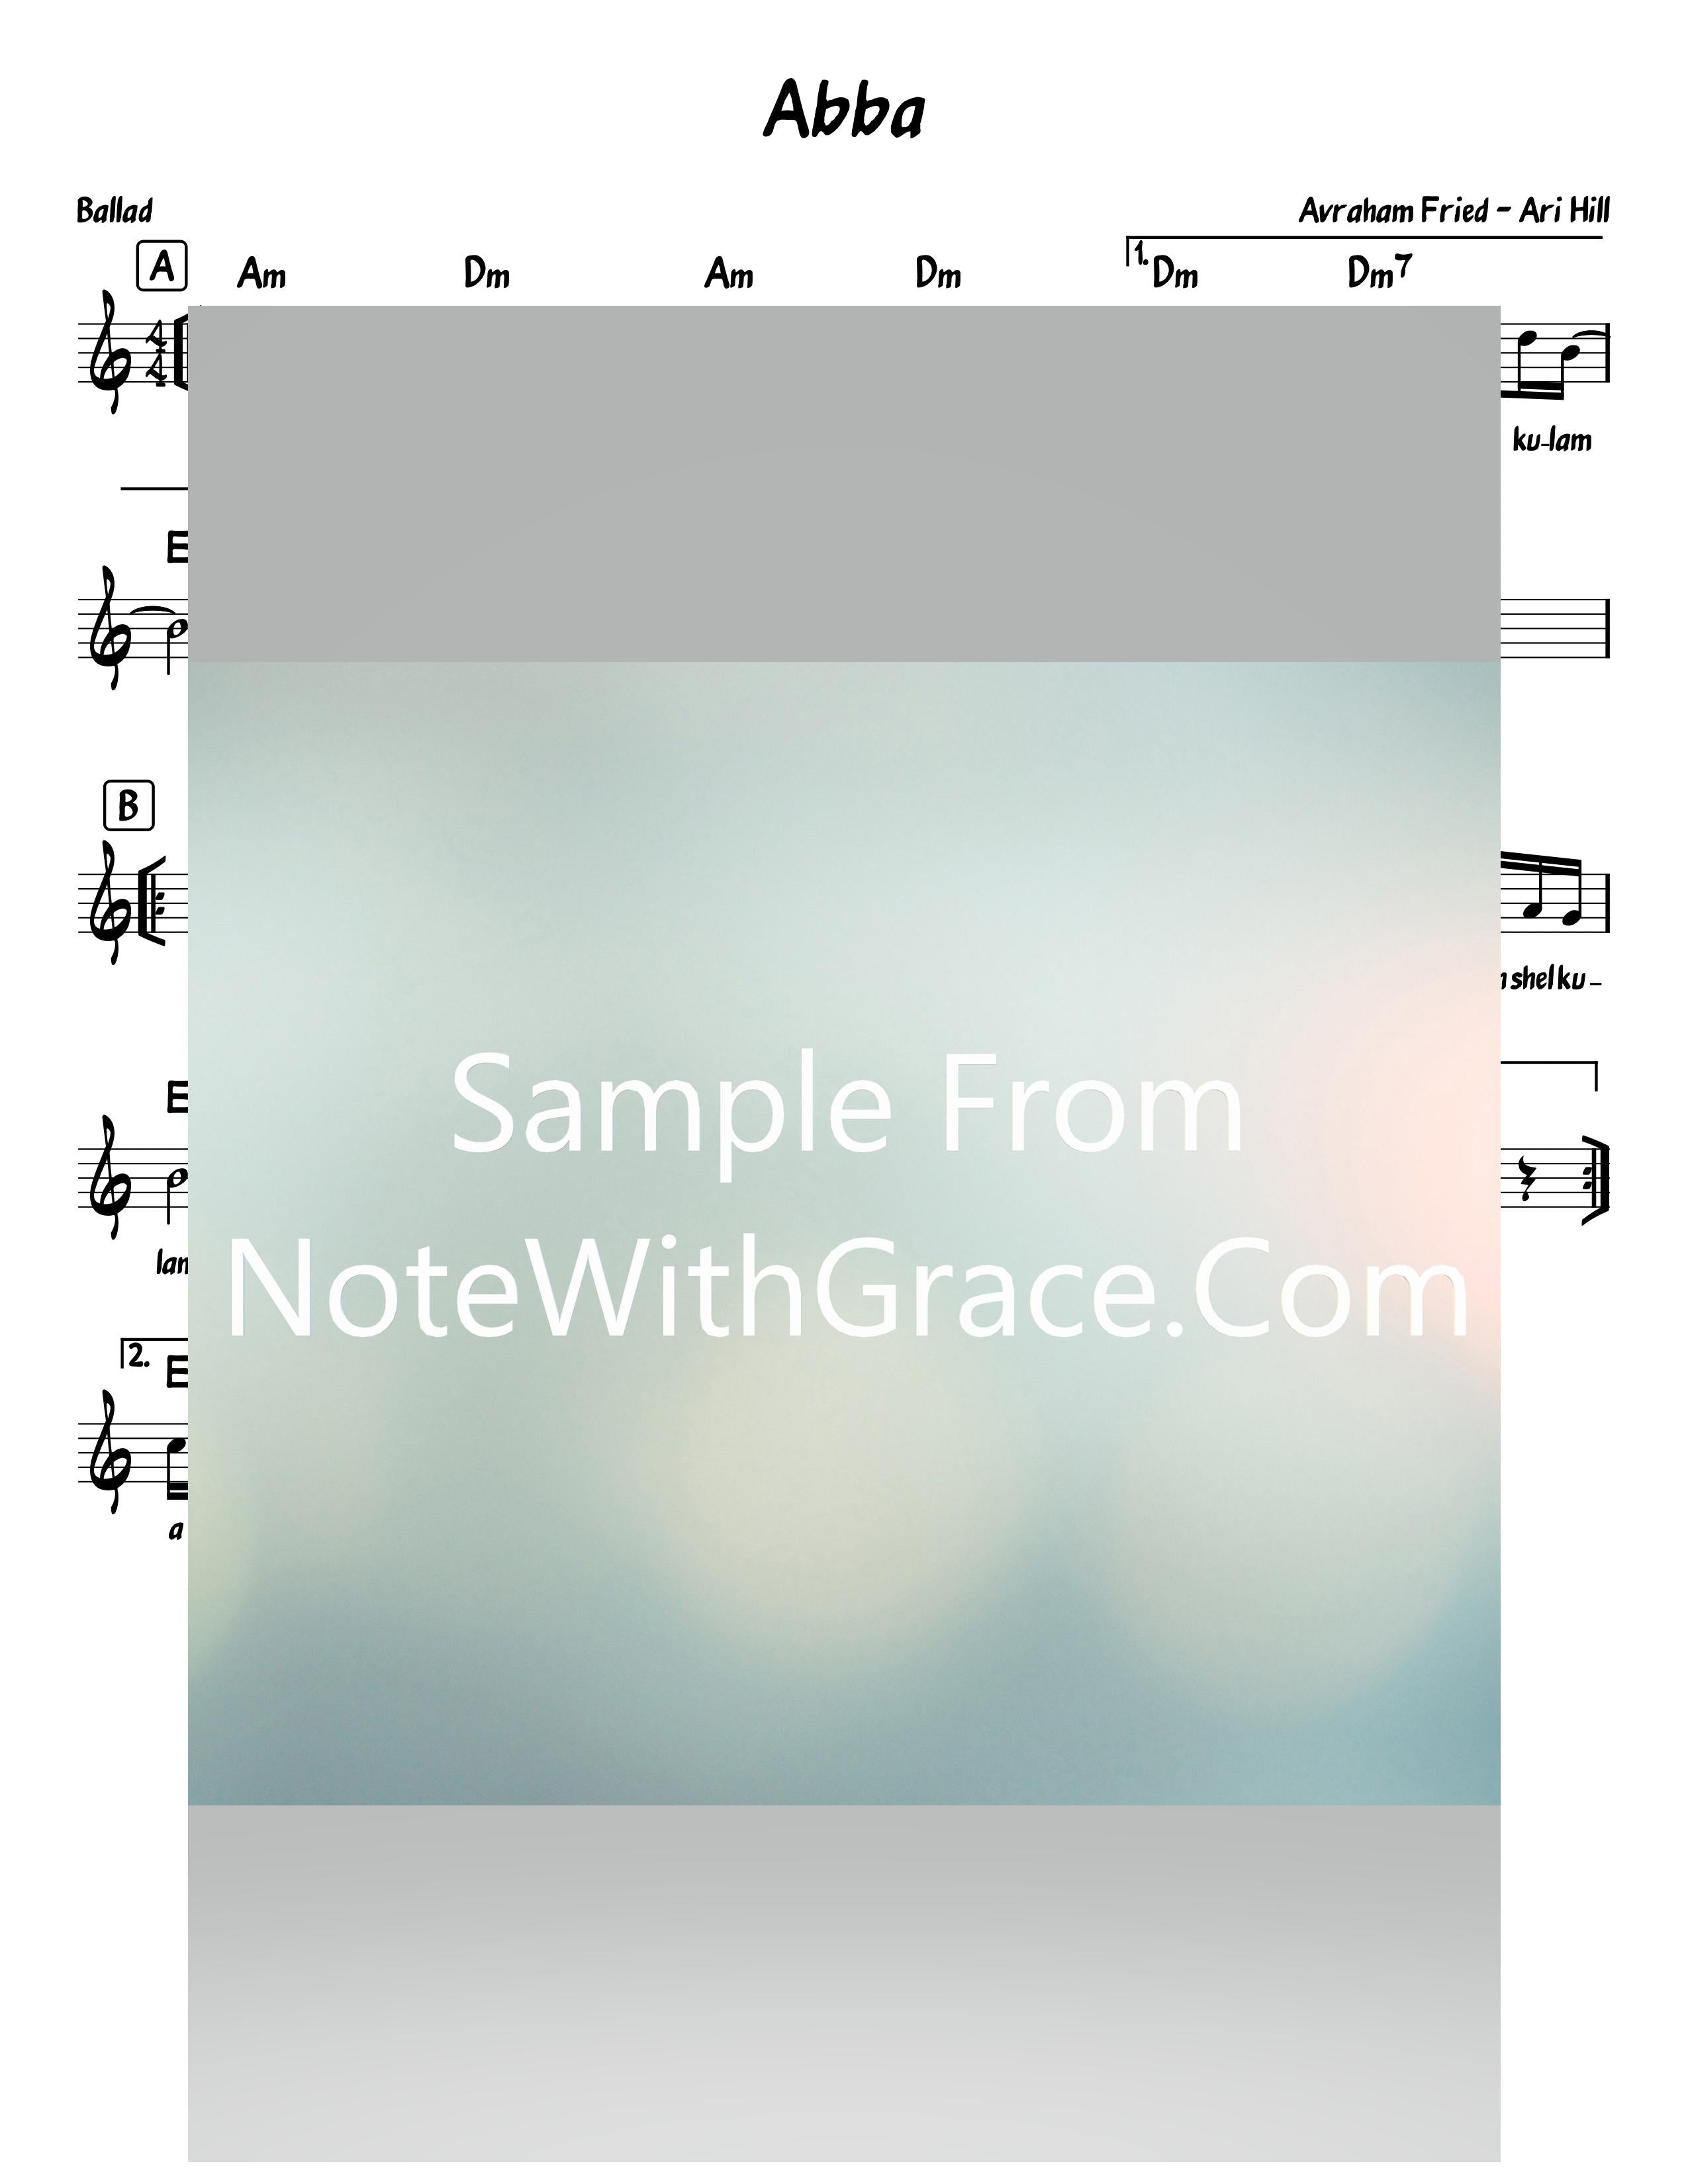 Abba - Tatte Lead Sheet (Avraham Fried - Ari Hill) Album: Single (Released 2019)-Sheet music-NoteWithGrace.com